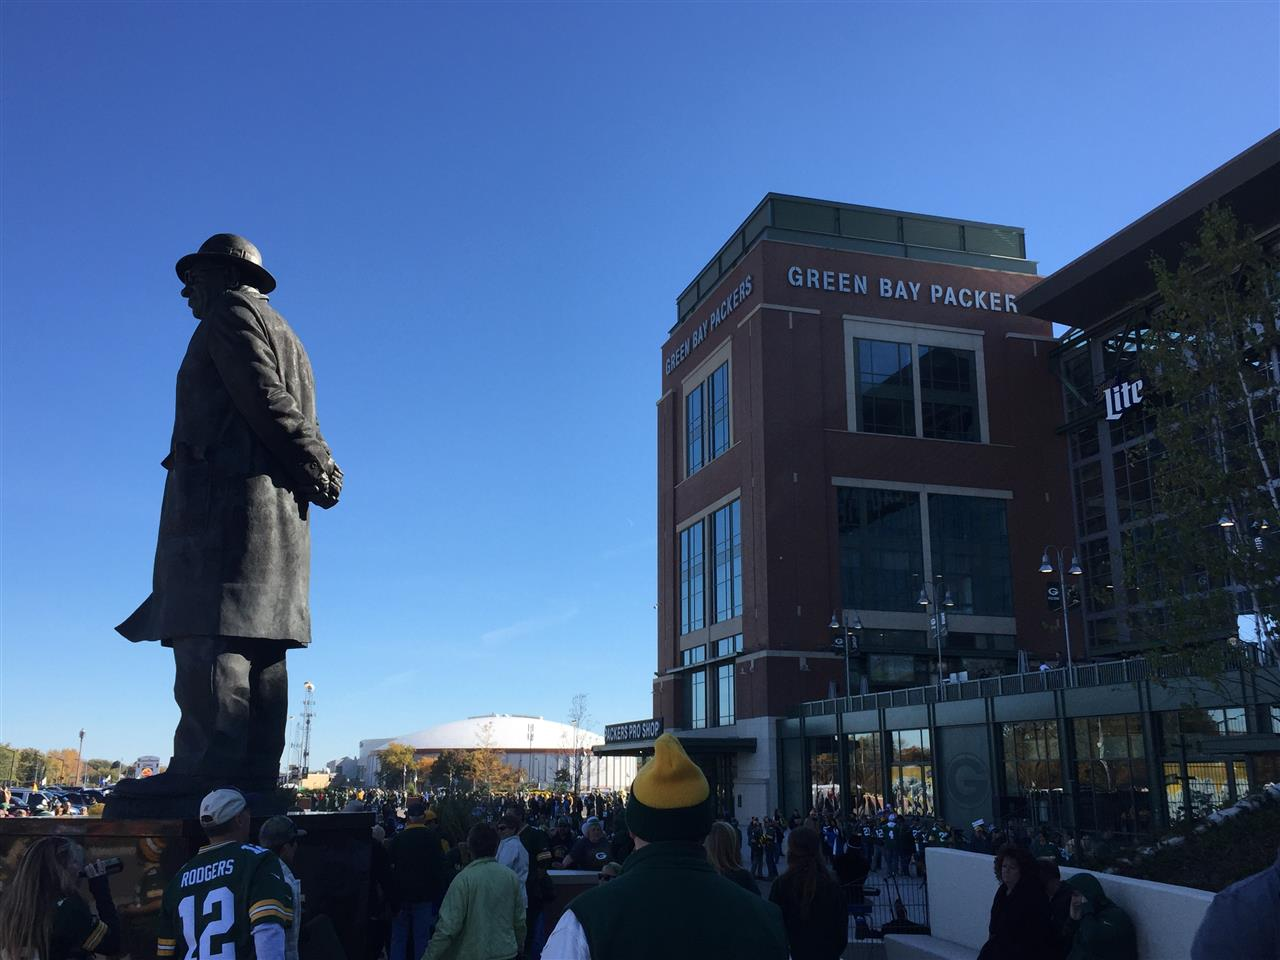 Home of the Green Bay Packers football team, Lambeau Field in Green Bay, WI